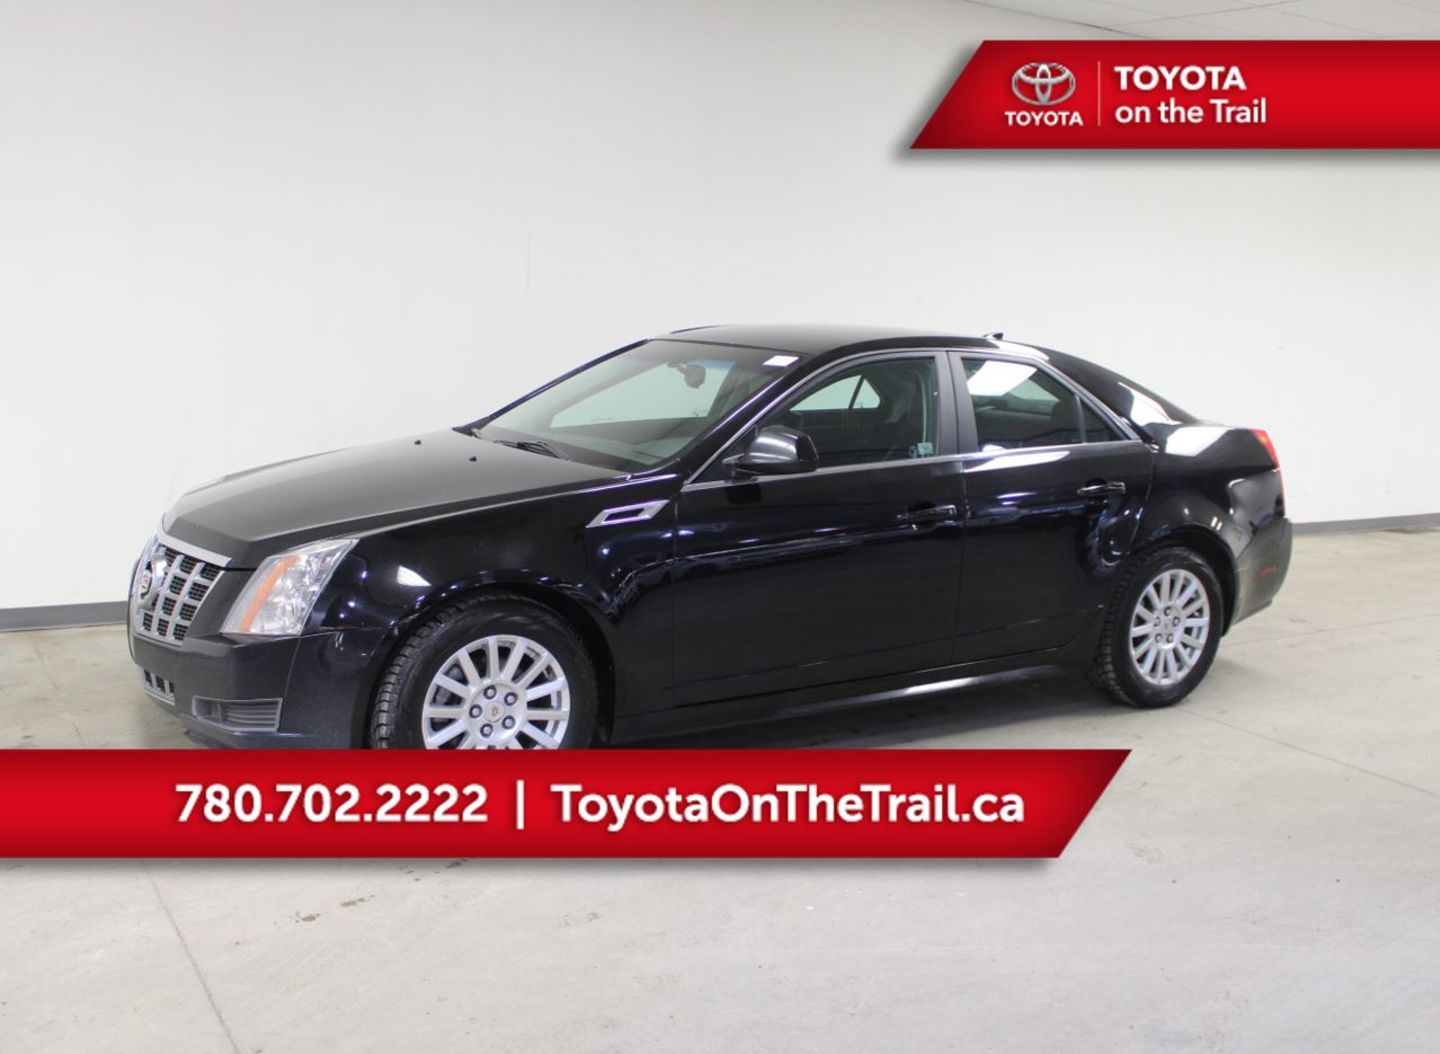 2012 Cadillac CTS Sedan  for sale in Edmonton, Alberta